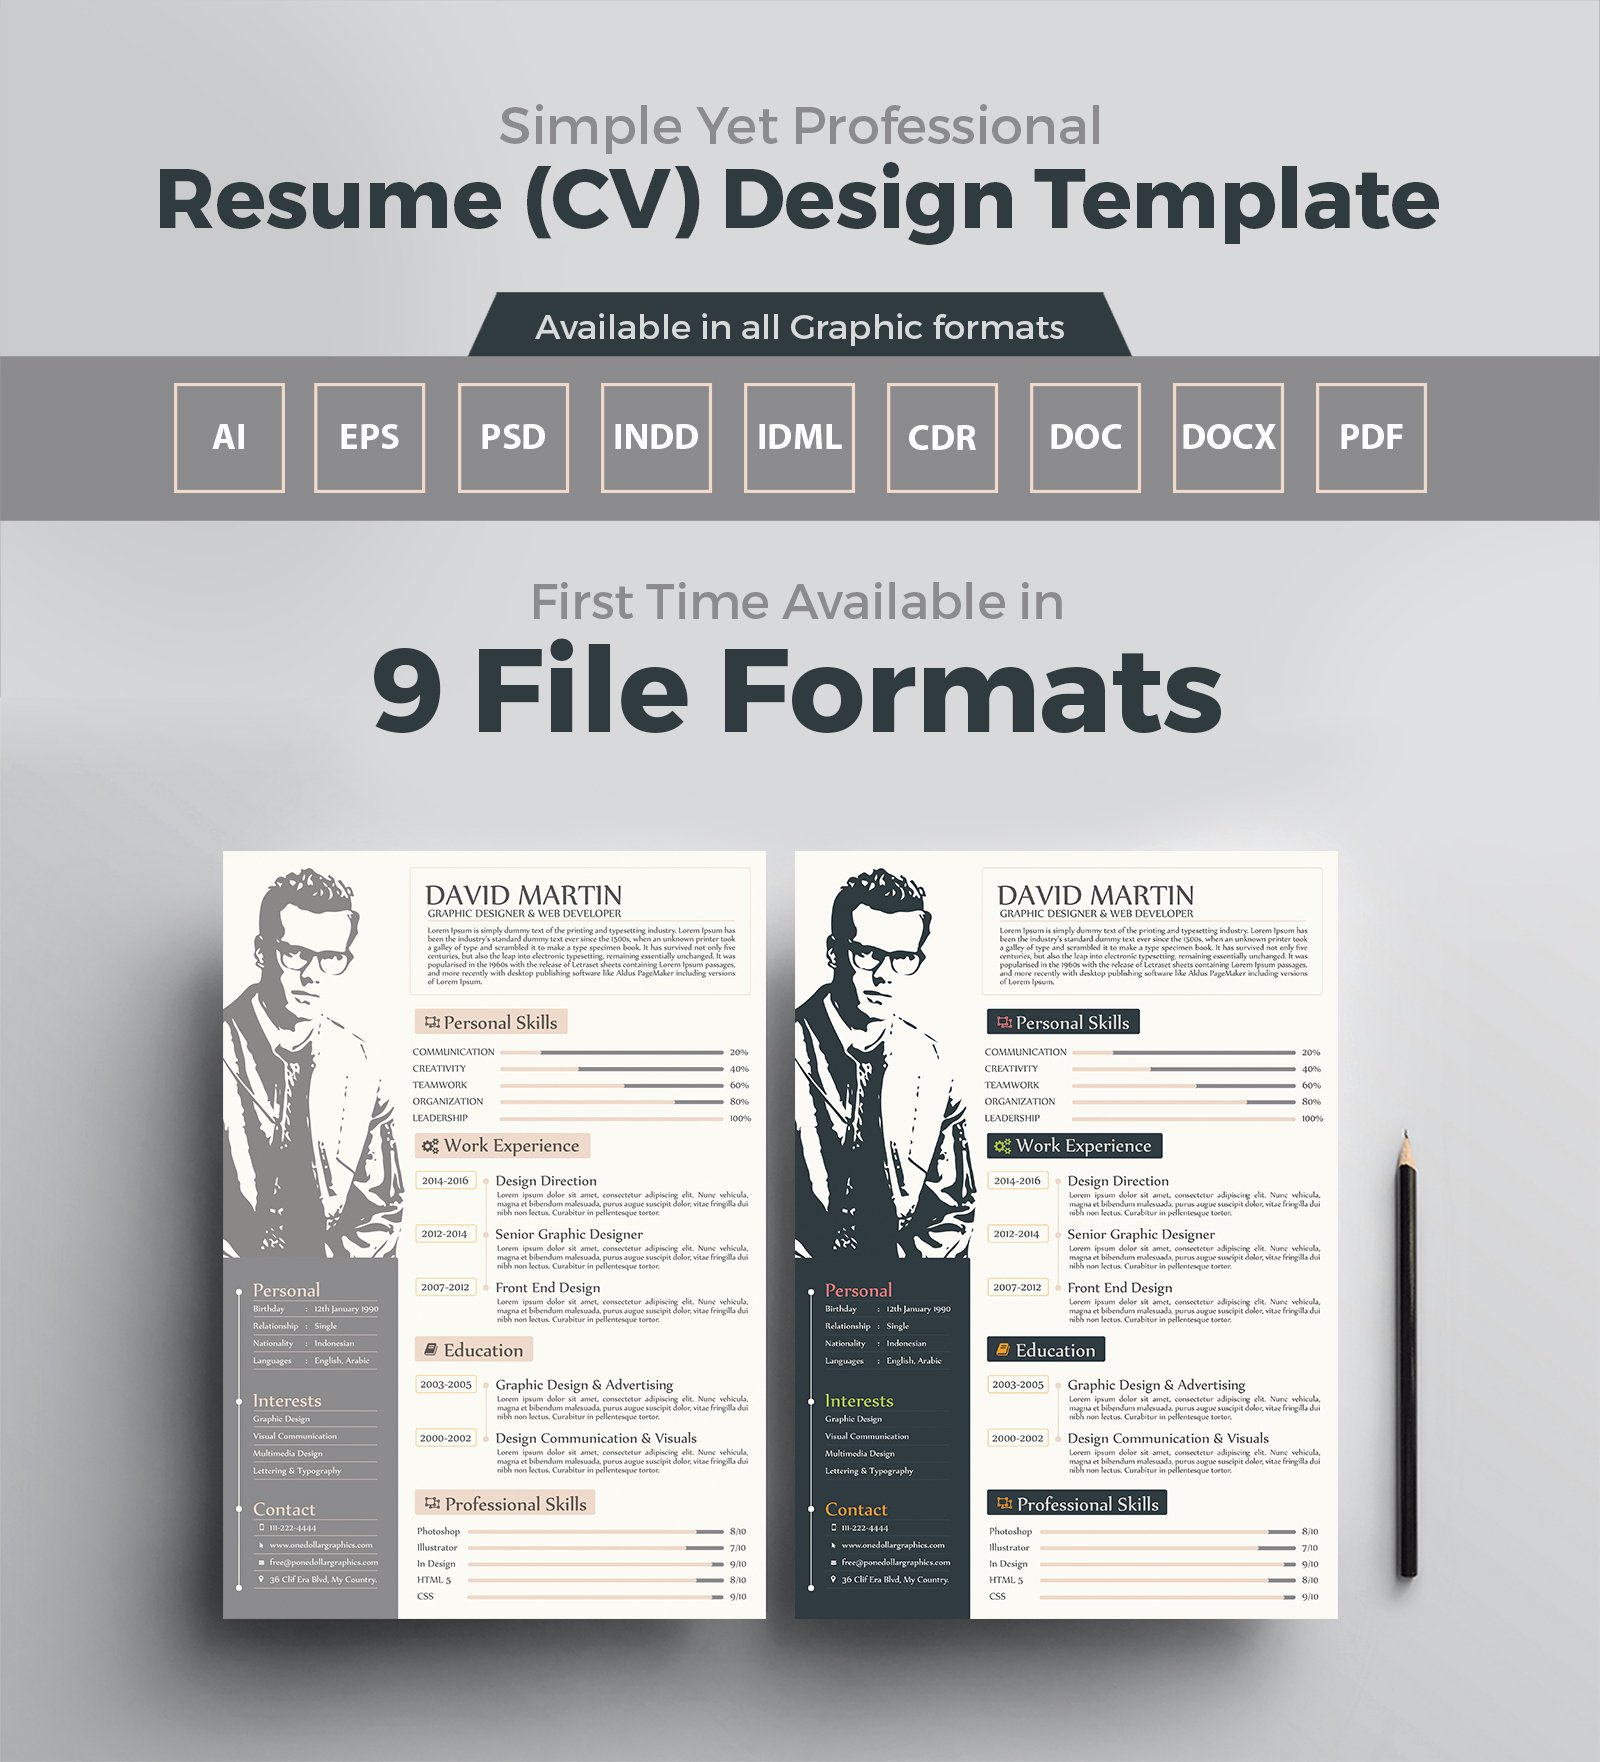 Graphic Designer Resume Pdf Best Of Simple yet Professional Resume Cv Design Templates In Ai Eps Psd Pdf Cdr Doc Docx Indd